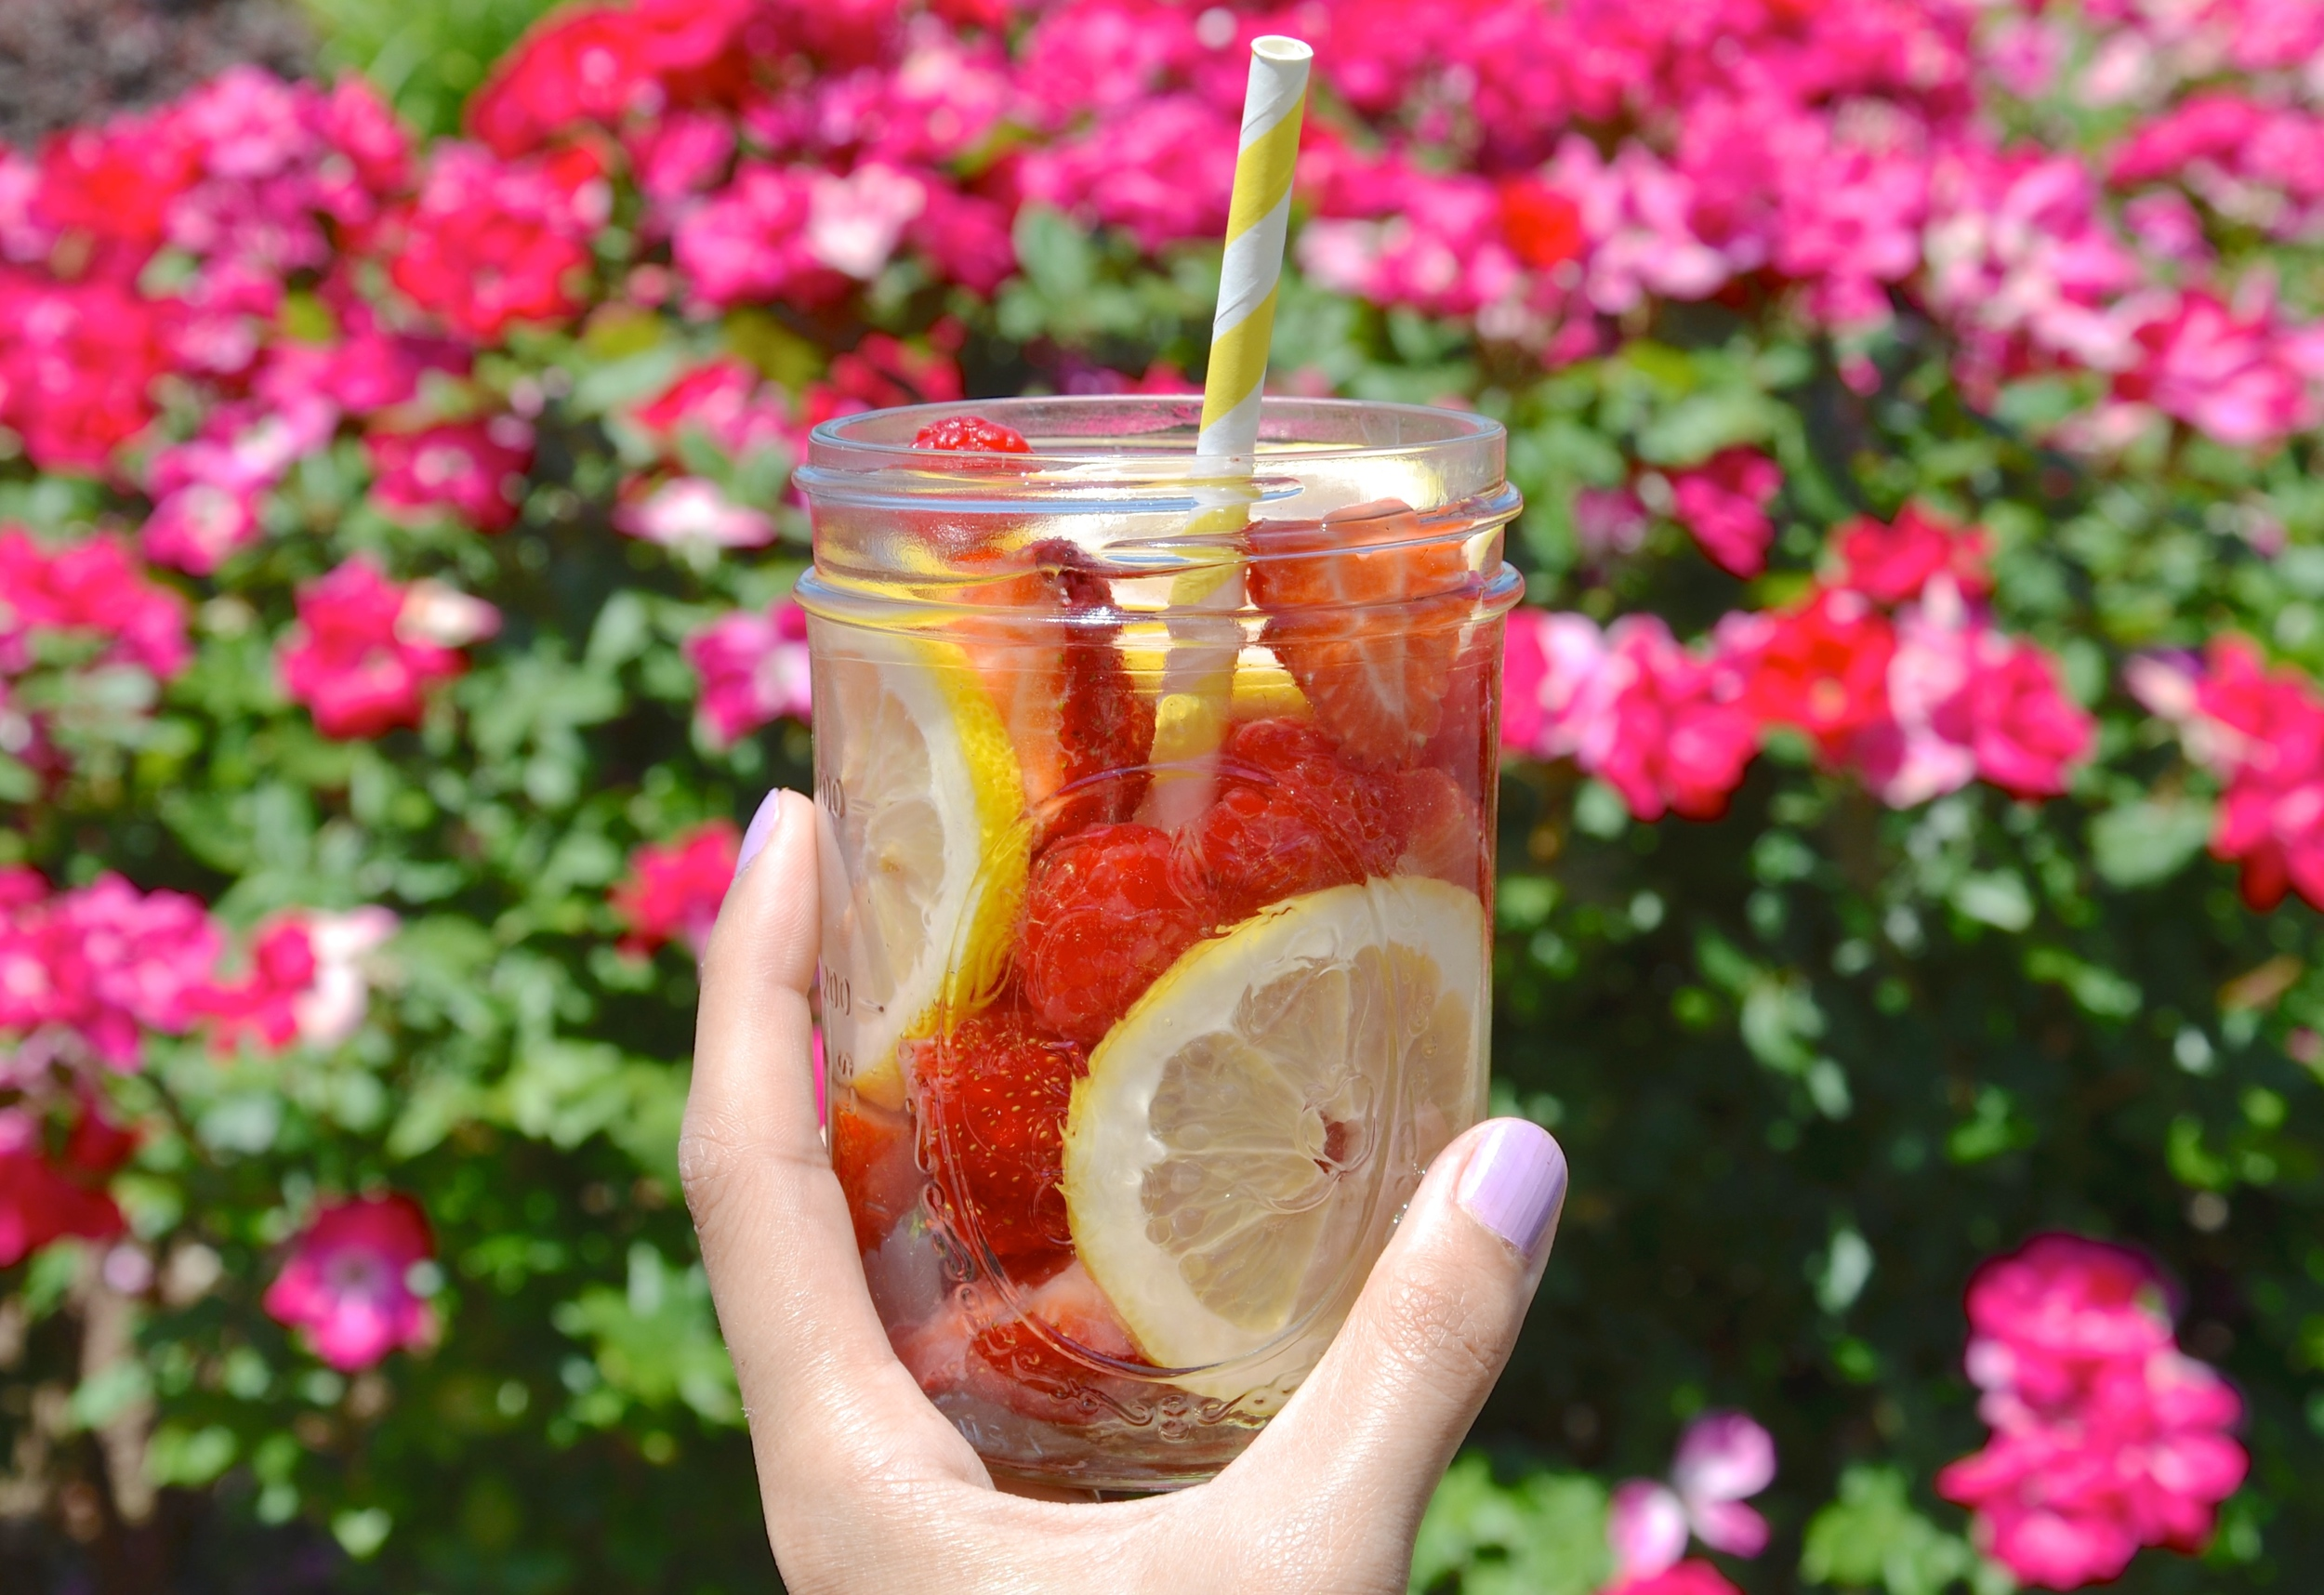 Strawberry, Raspberry, and Lemon Infused Water